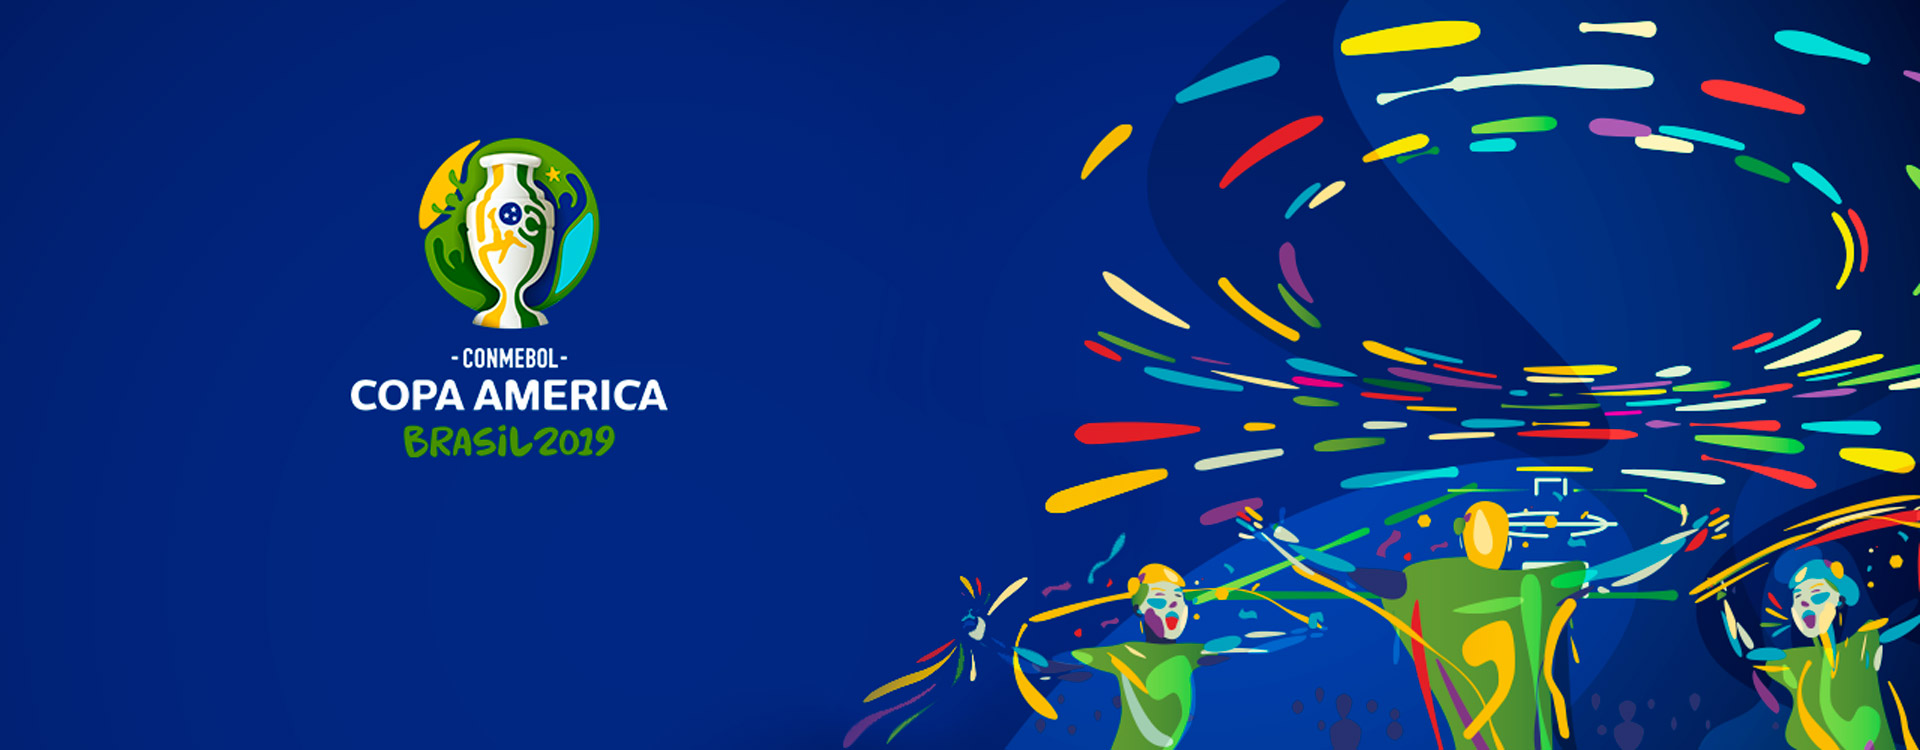 Copa America 2019: Less than three months to the biggest event